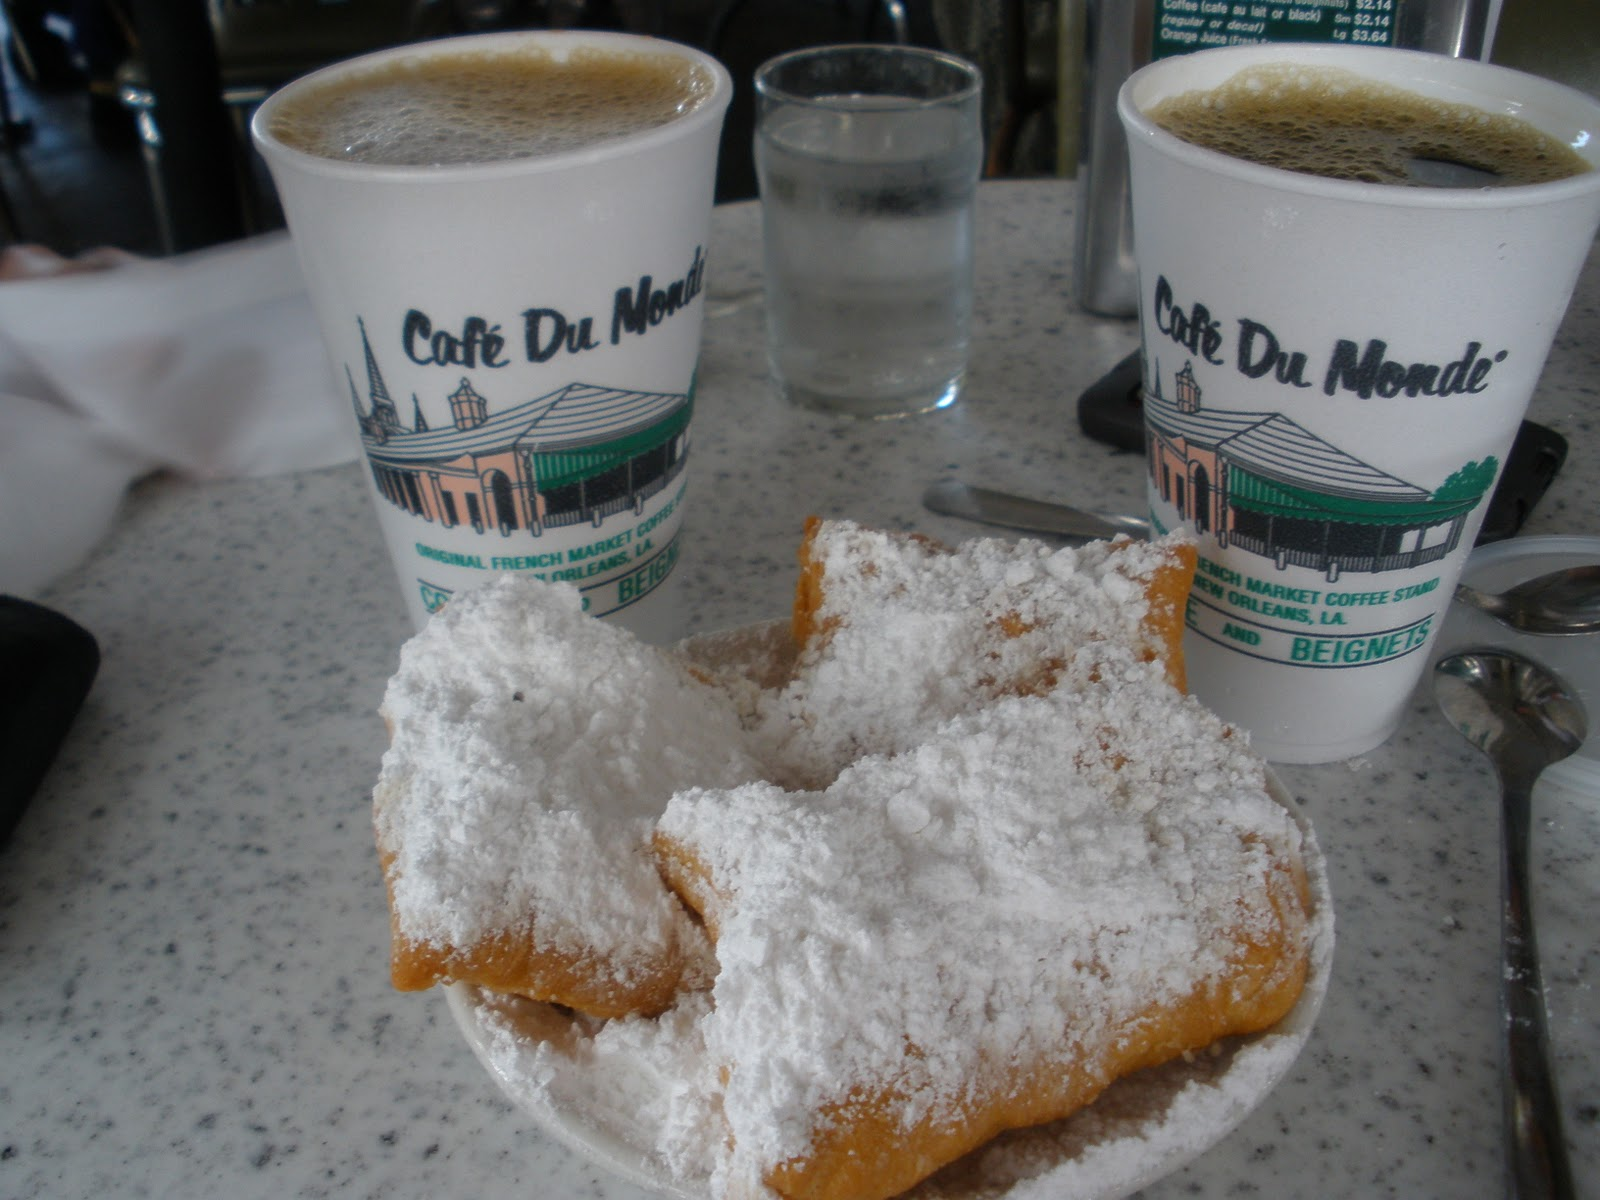 Day two began with a nice work out afterall we are still trainingfor cleveland half marathon which was followed by a trip to the infamous cafe du monde